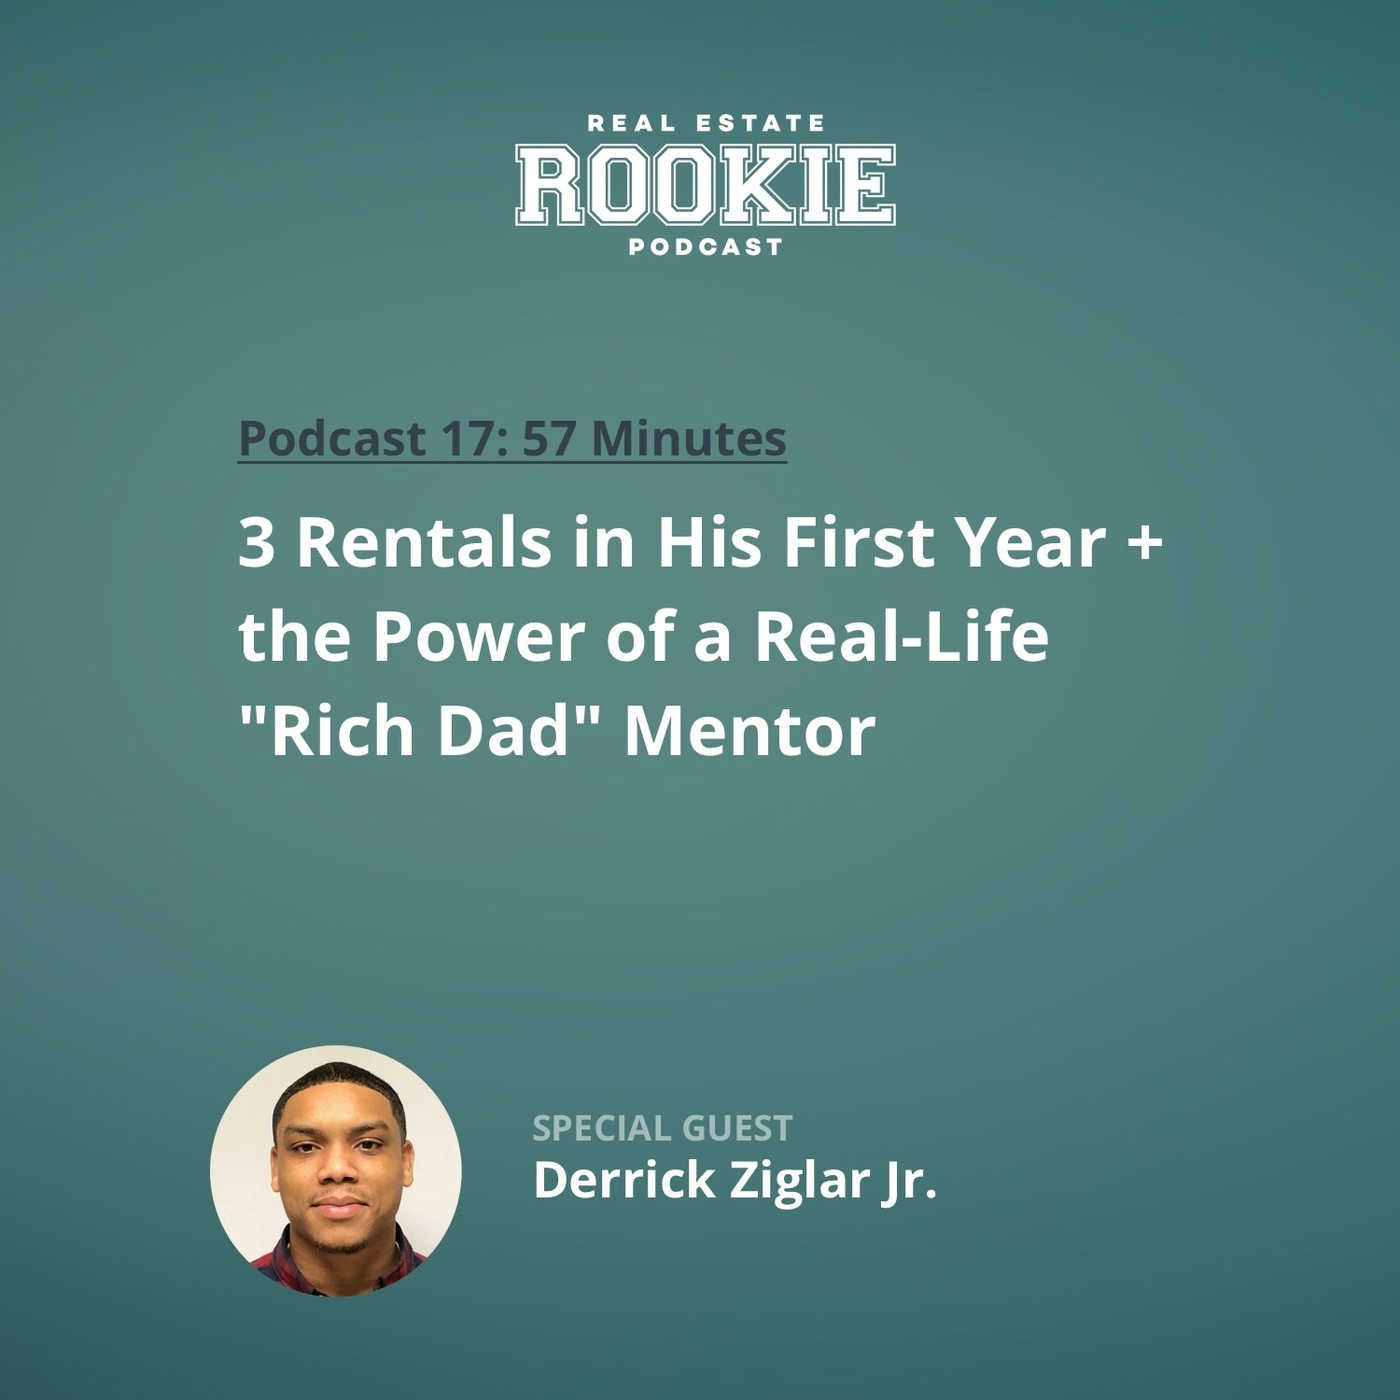 3 Rentals in His First Year & the Power of a Real-Life 'Rich Dad' Mentor with Derrick Ziglar Jr.